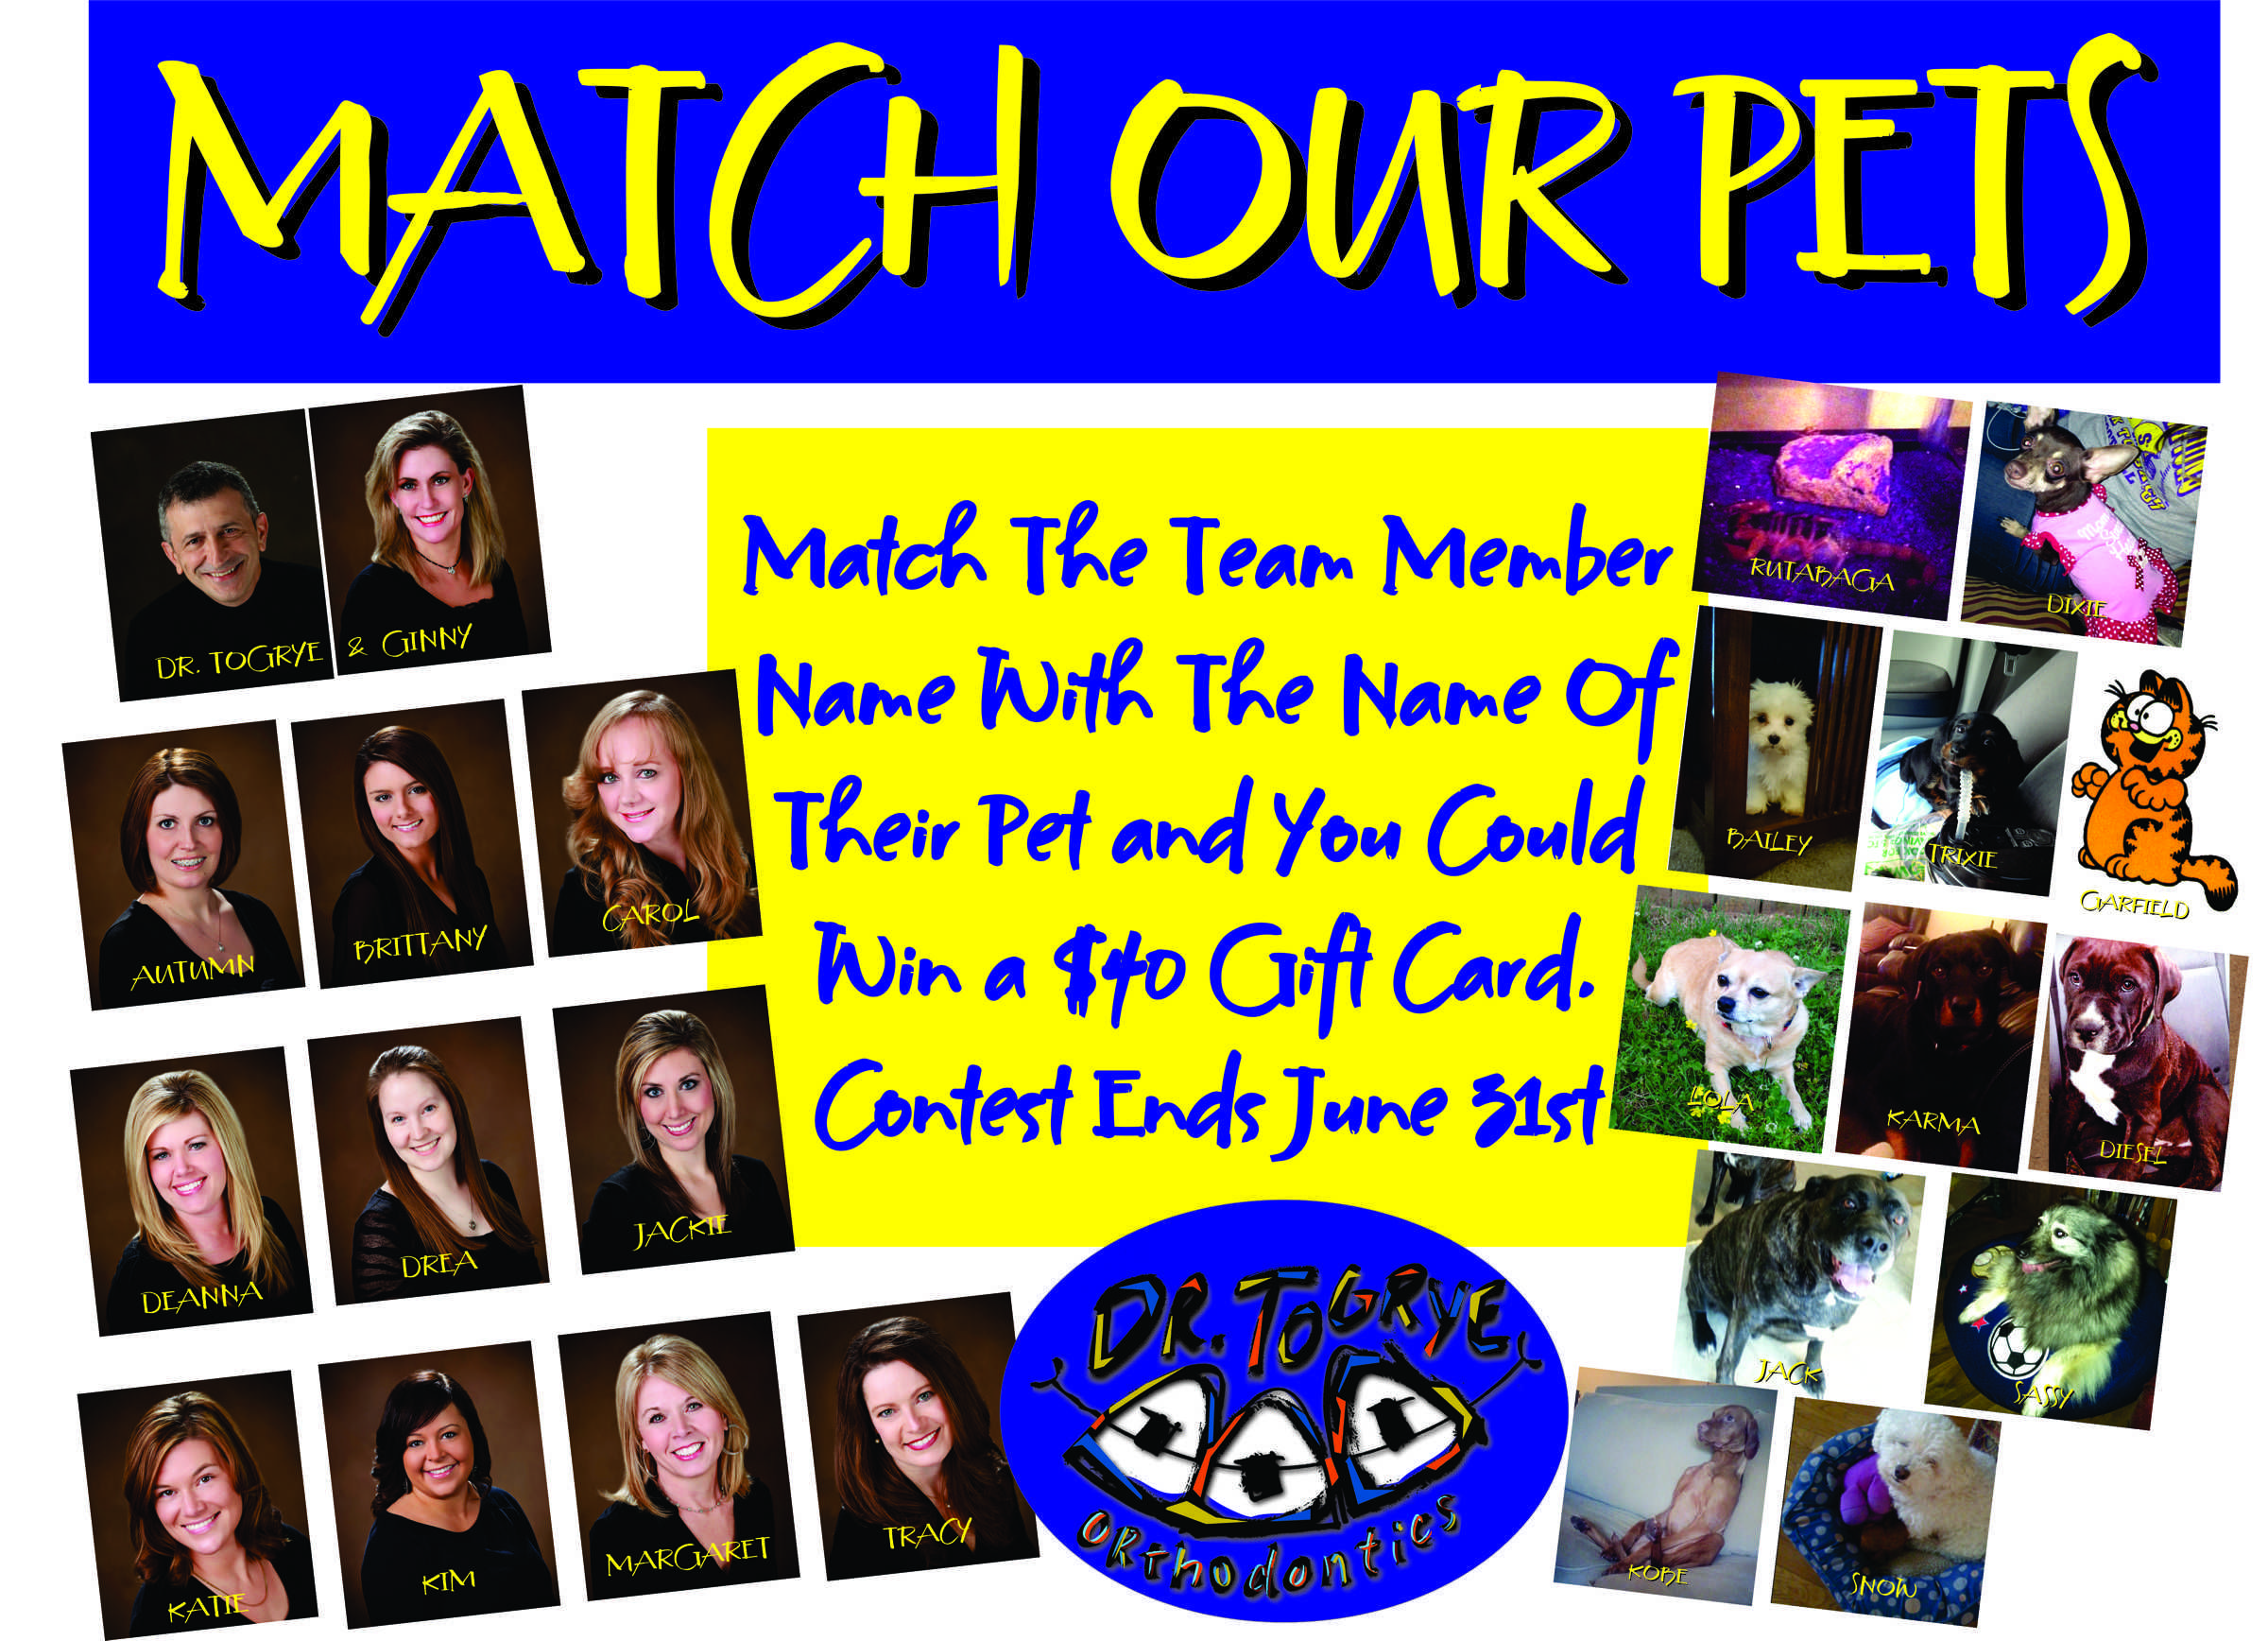 office fun ideas. match the team member name with of their pet and you could win a orthodontics marketingoffice gamesoffice managementdental caremarketing ideasfun office fun ideas